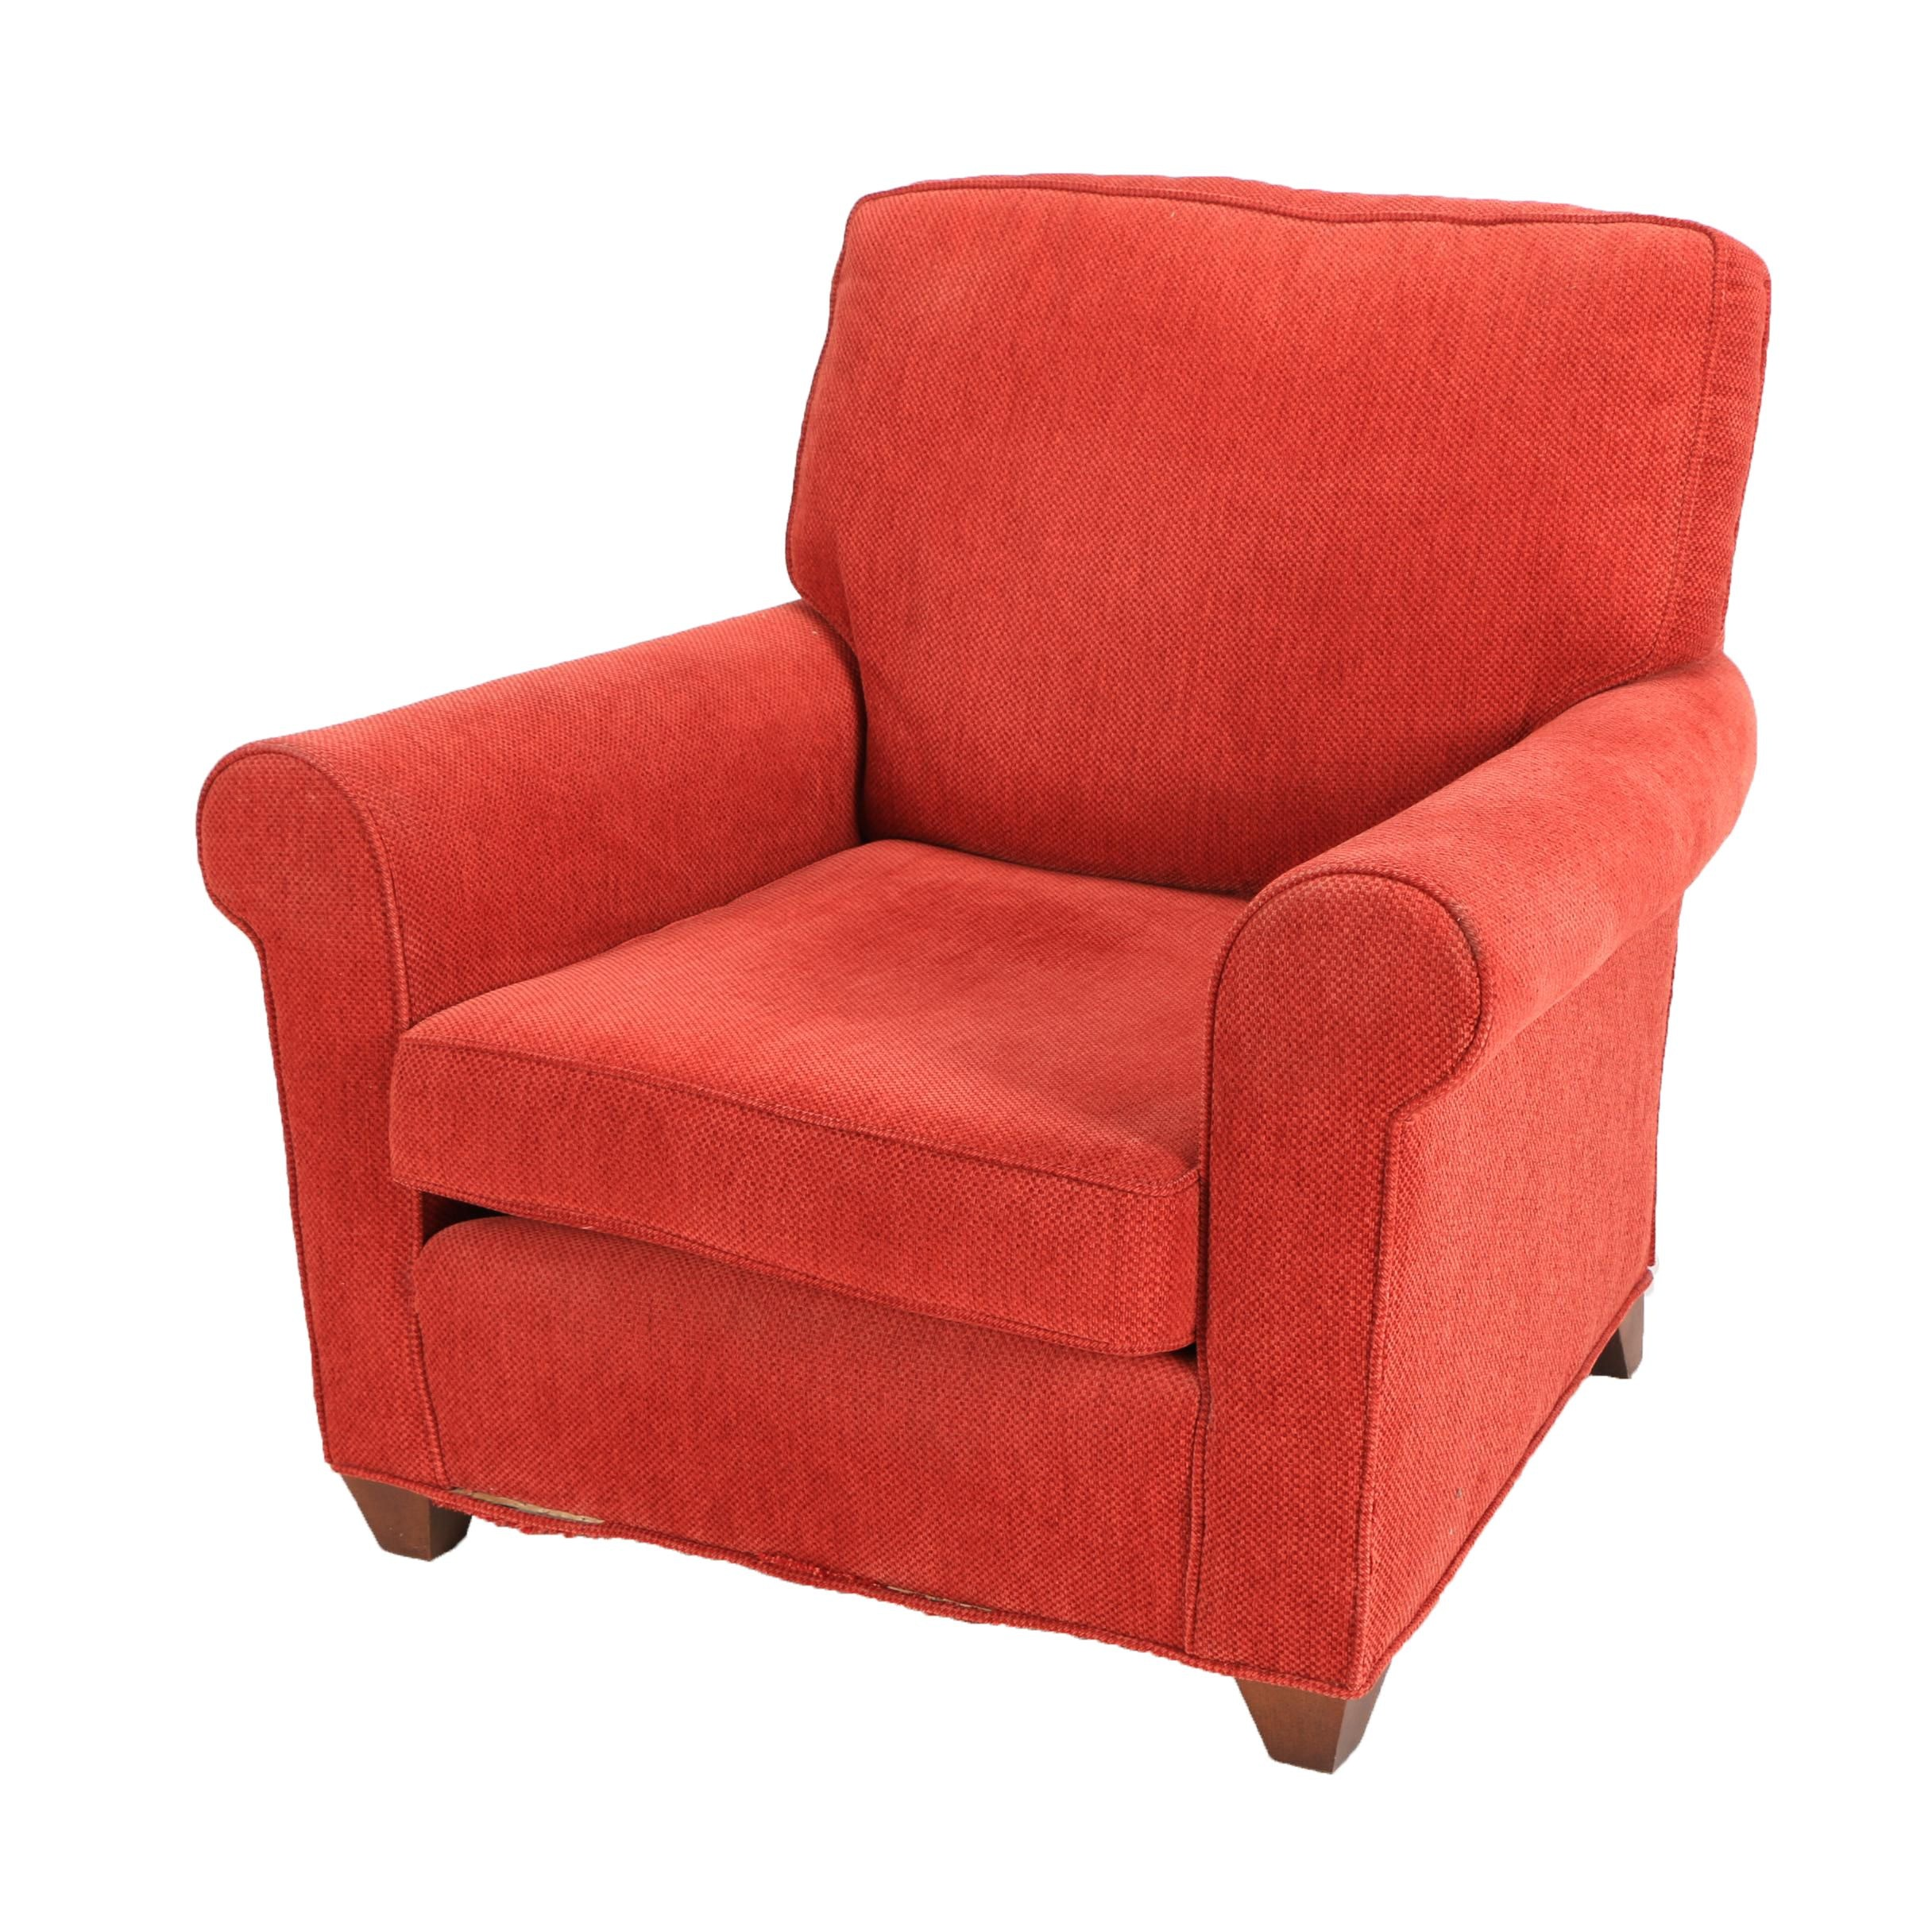 Red Upholstered Armchair